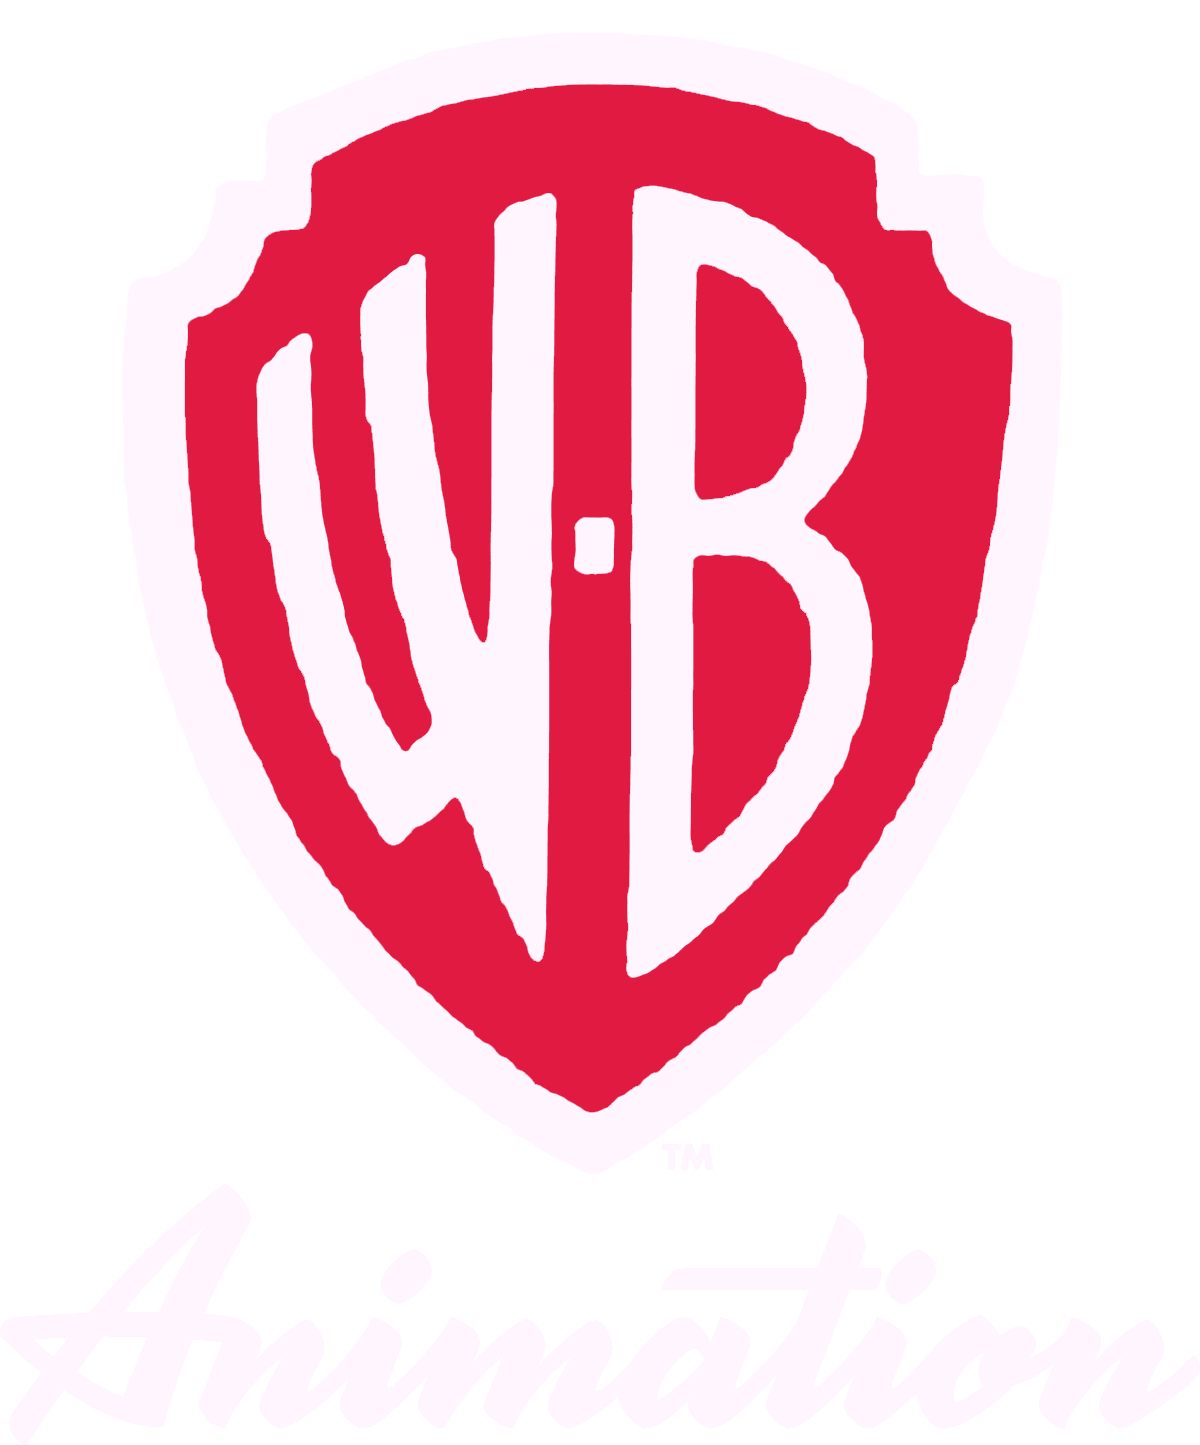 warner animation group logo, animation logo version artchanxv deviantart 12030